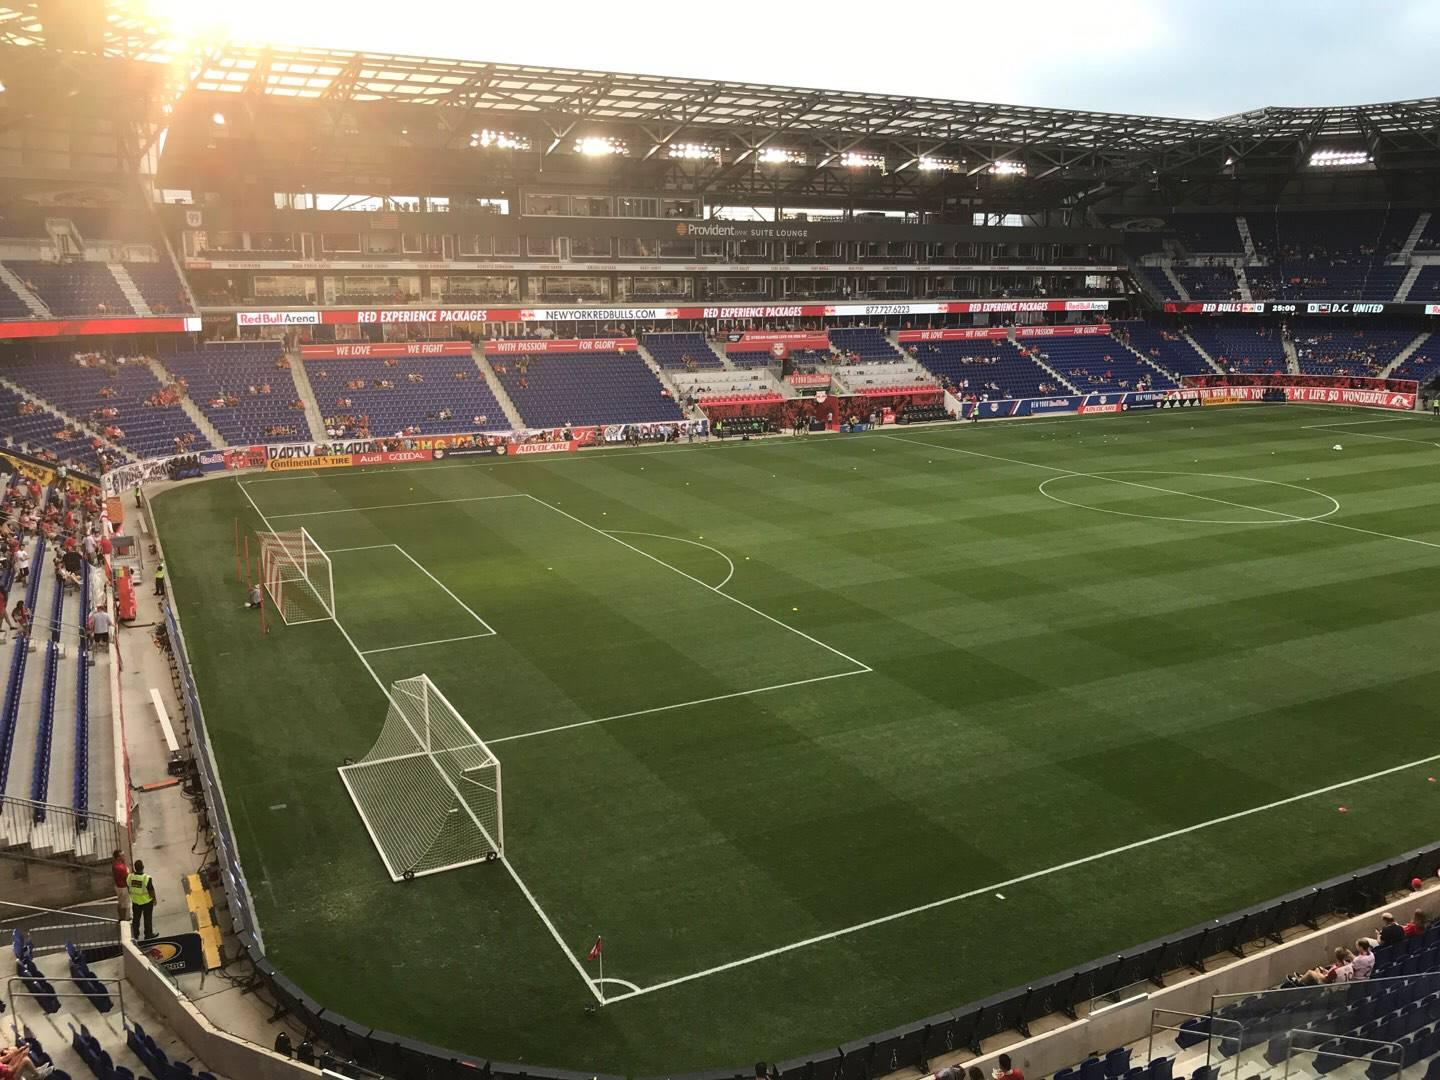 Red Bull Arena (New Jersey) Section 230 Row 5 Seat 5